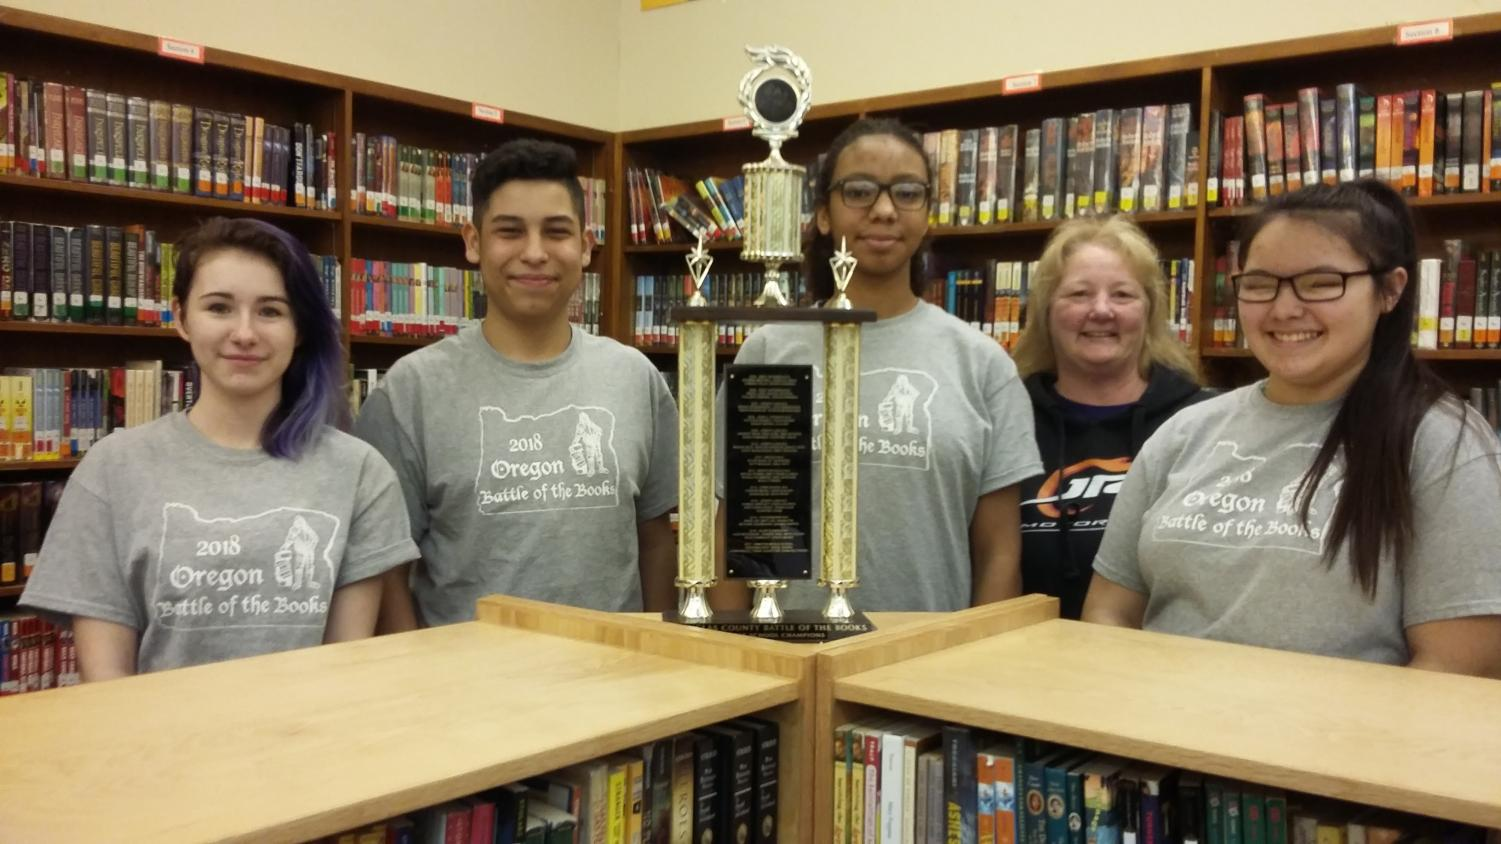 Jasmine Bailey, Israel Sierra, Adrianna Sapp, Teri Morrison (coach) and Savaun Deng pose with their trophy after winning the Battle of the Books regional competition for the second year in a row.